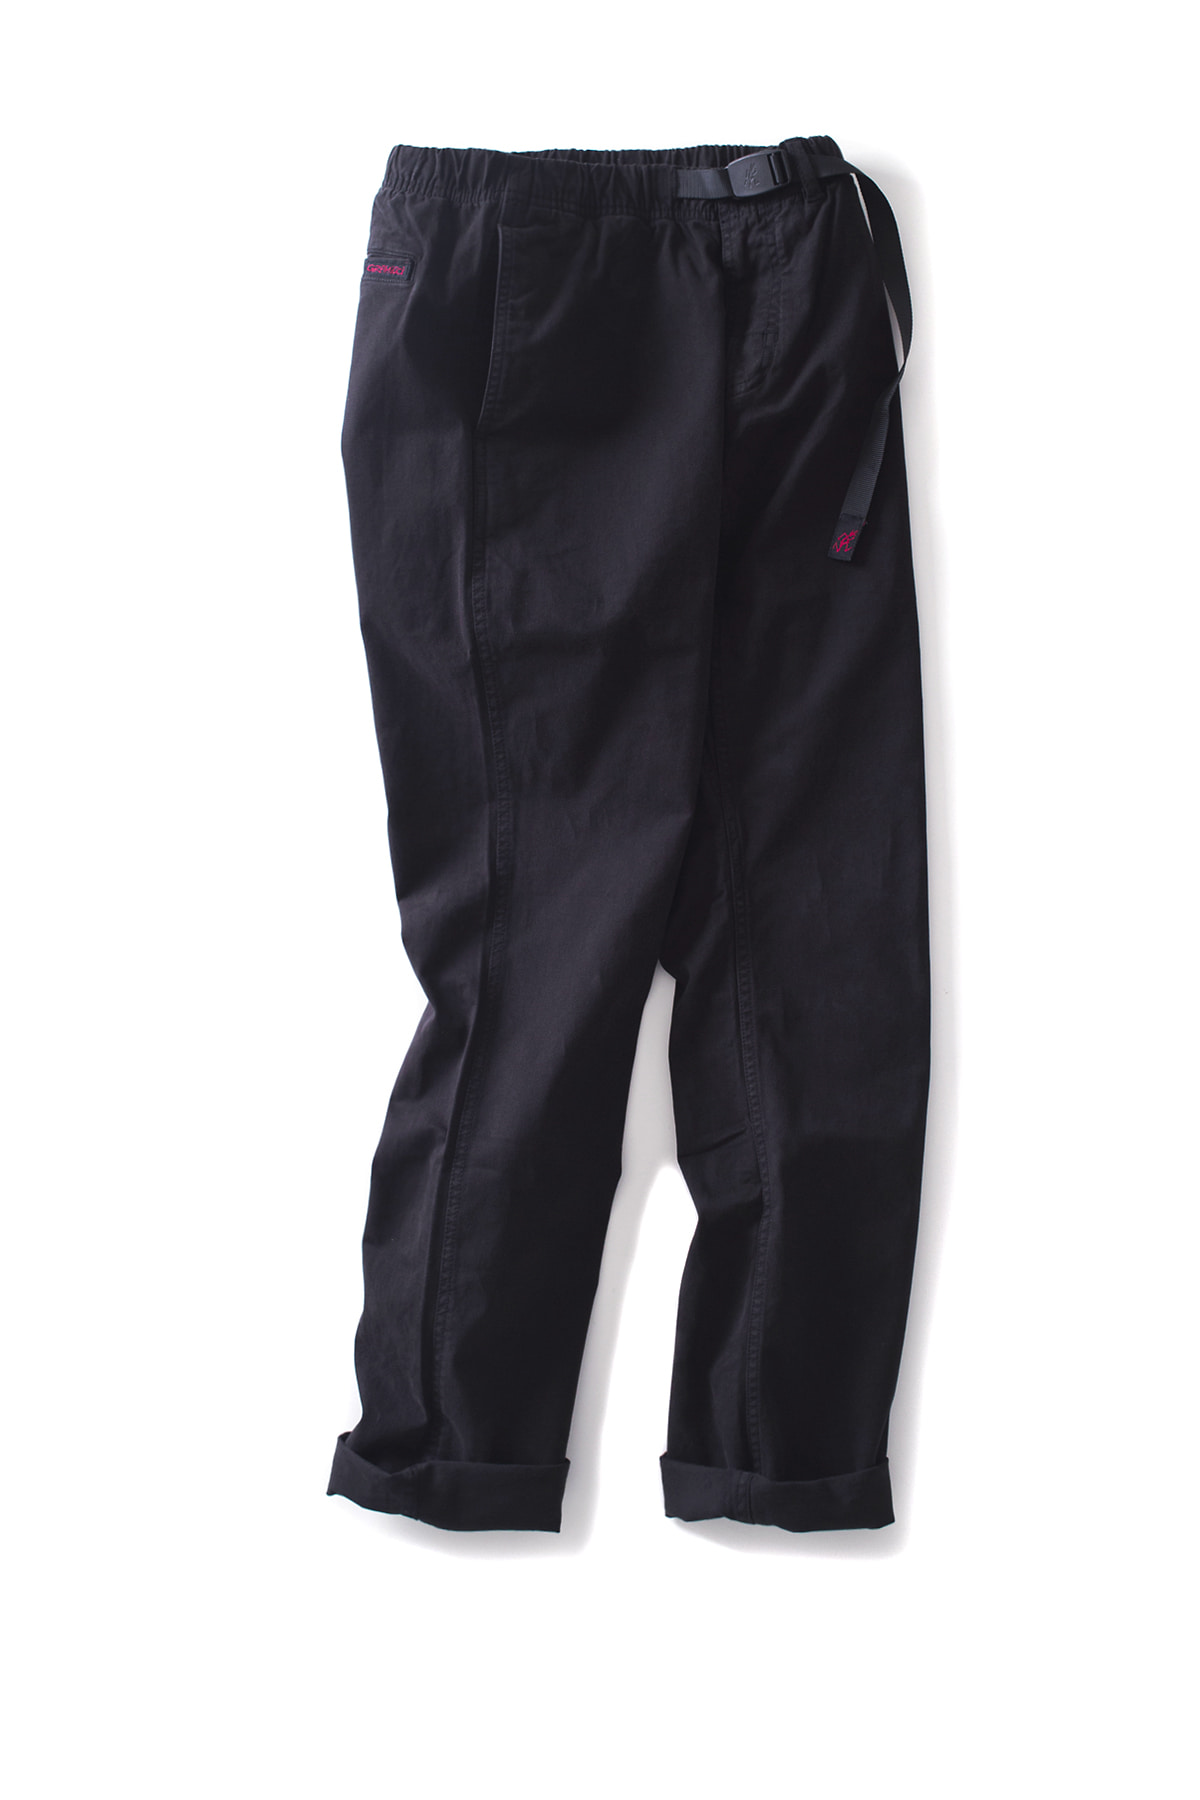 Gramicci : NN Pants (Black)